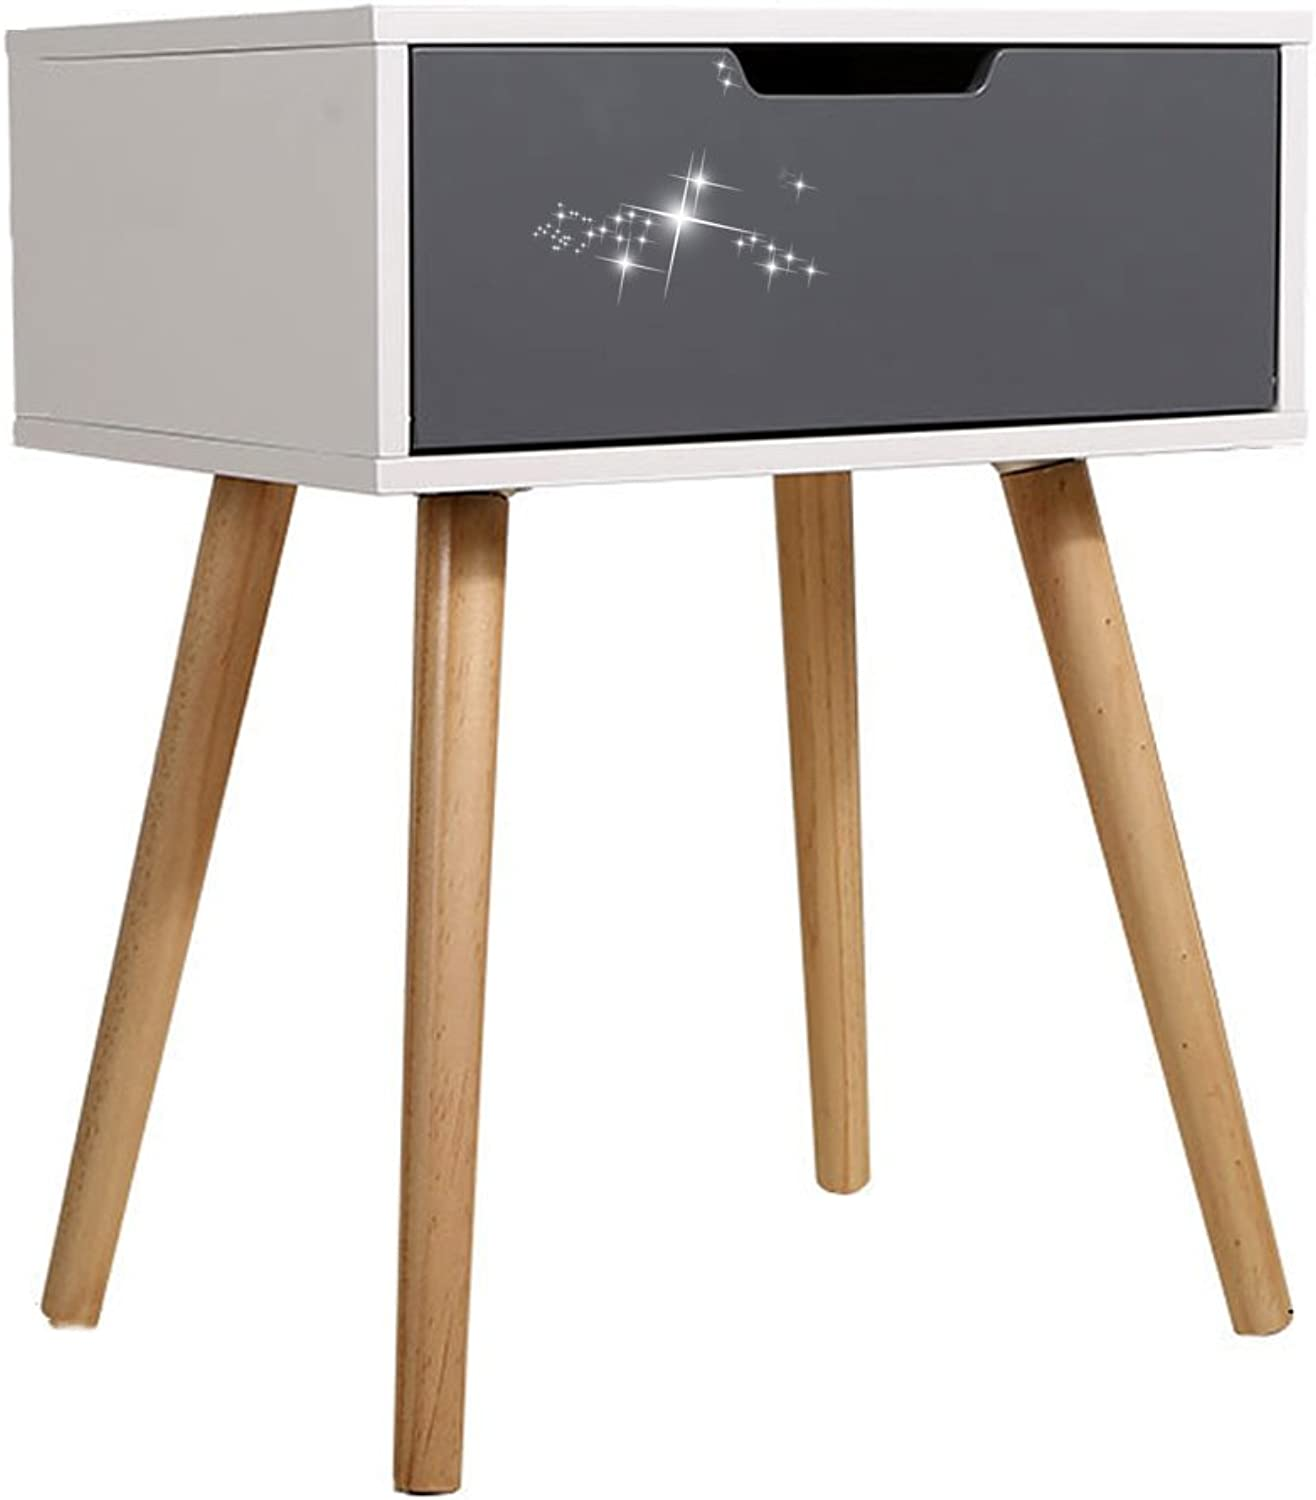 Bedside Table Solid Wood Bedside Storage Cabinet Simple Desk Magazine Table Bedside Small Cabinet Living Room Items Storage and Storage Small Table with Drawer